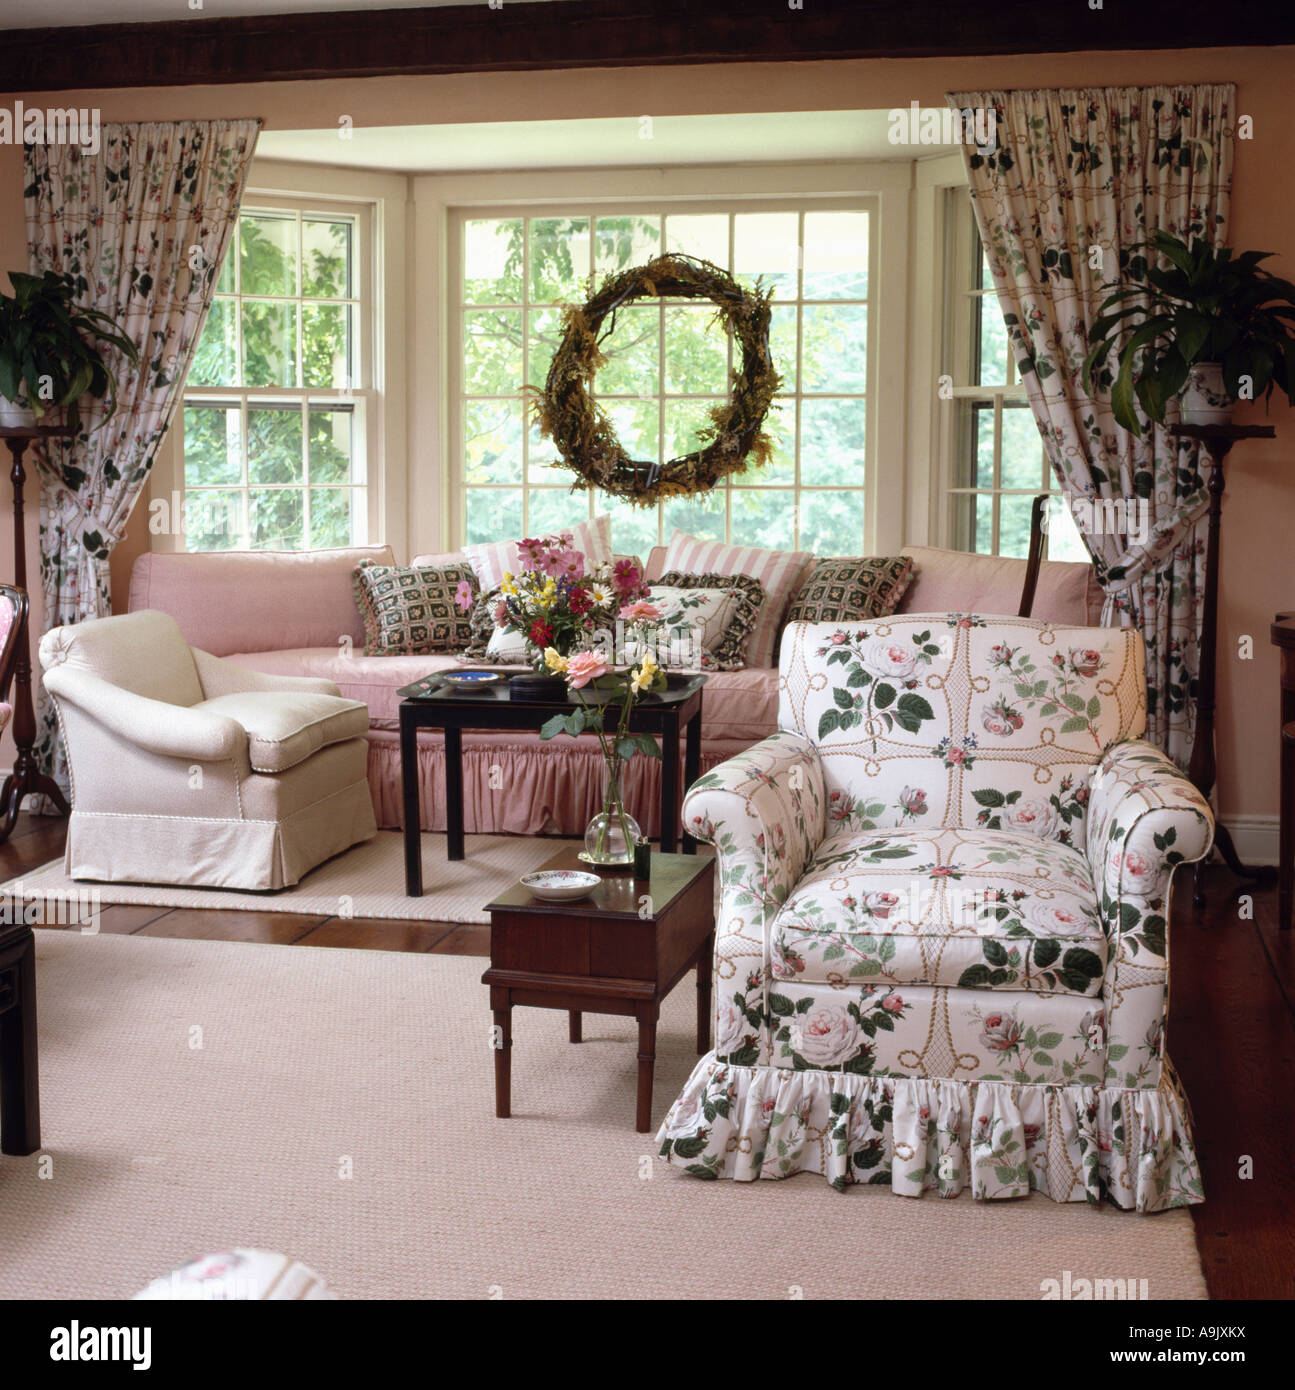 Patterned Curtains For Living Room Interiors Livingroom Drapes Chair Stock Photos Interiors